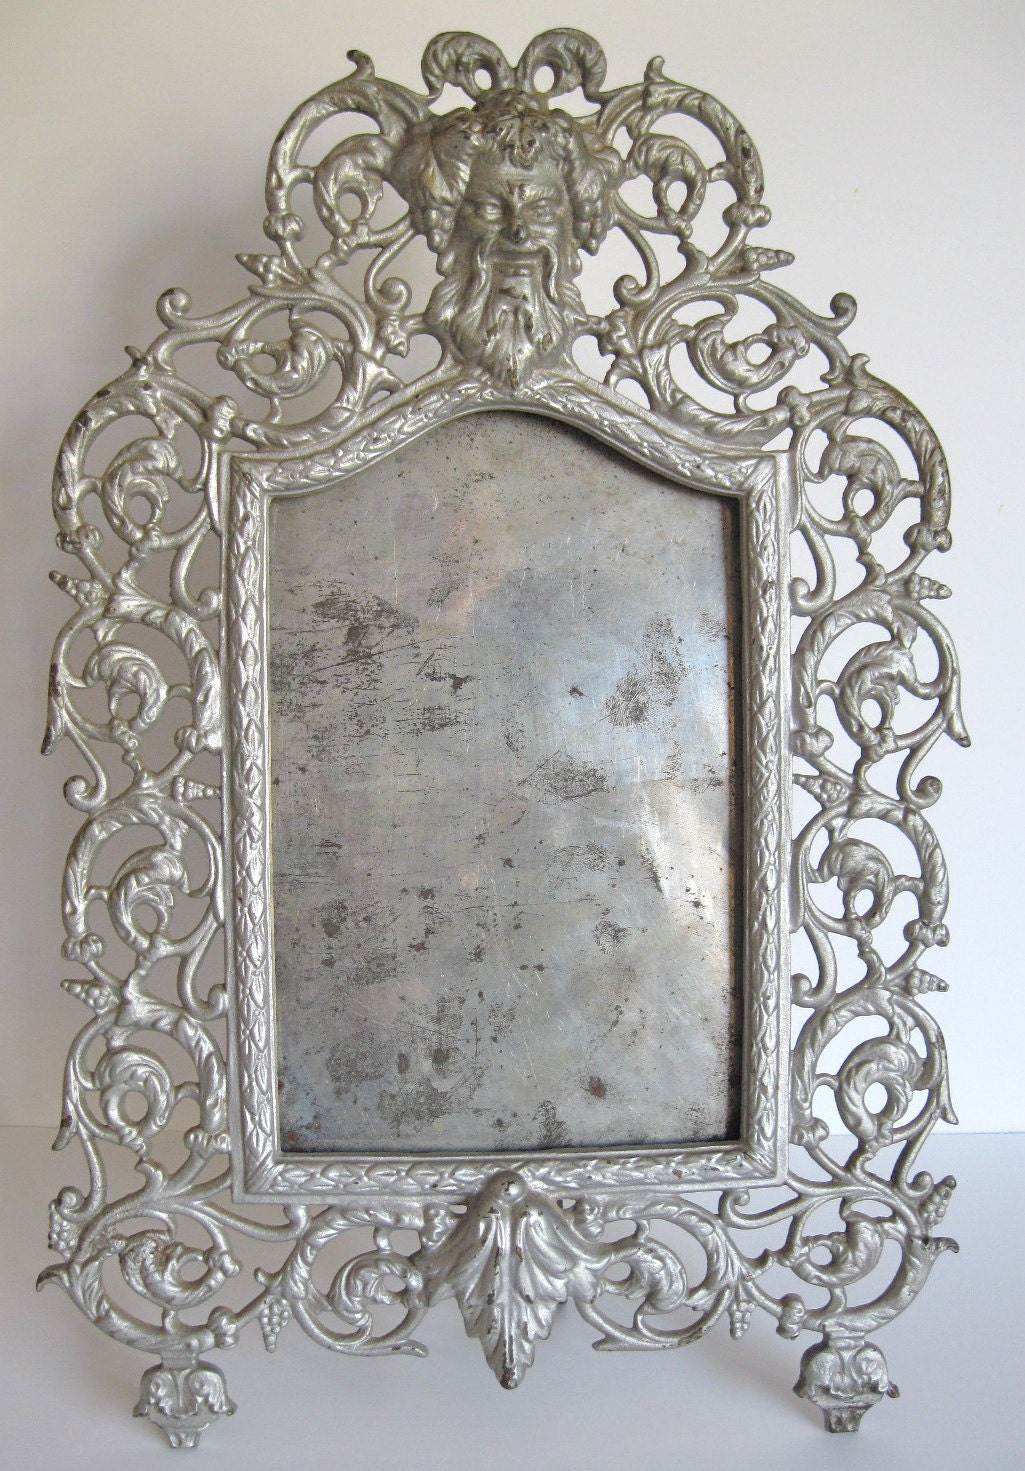 vintage gothic metal picture frame silver frame with ornate. Black Bedroom Furniture Sets. Home Design Ideas